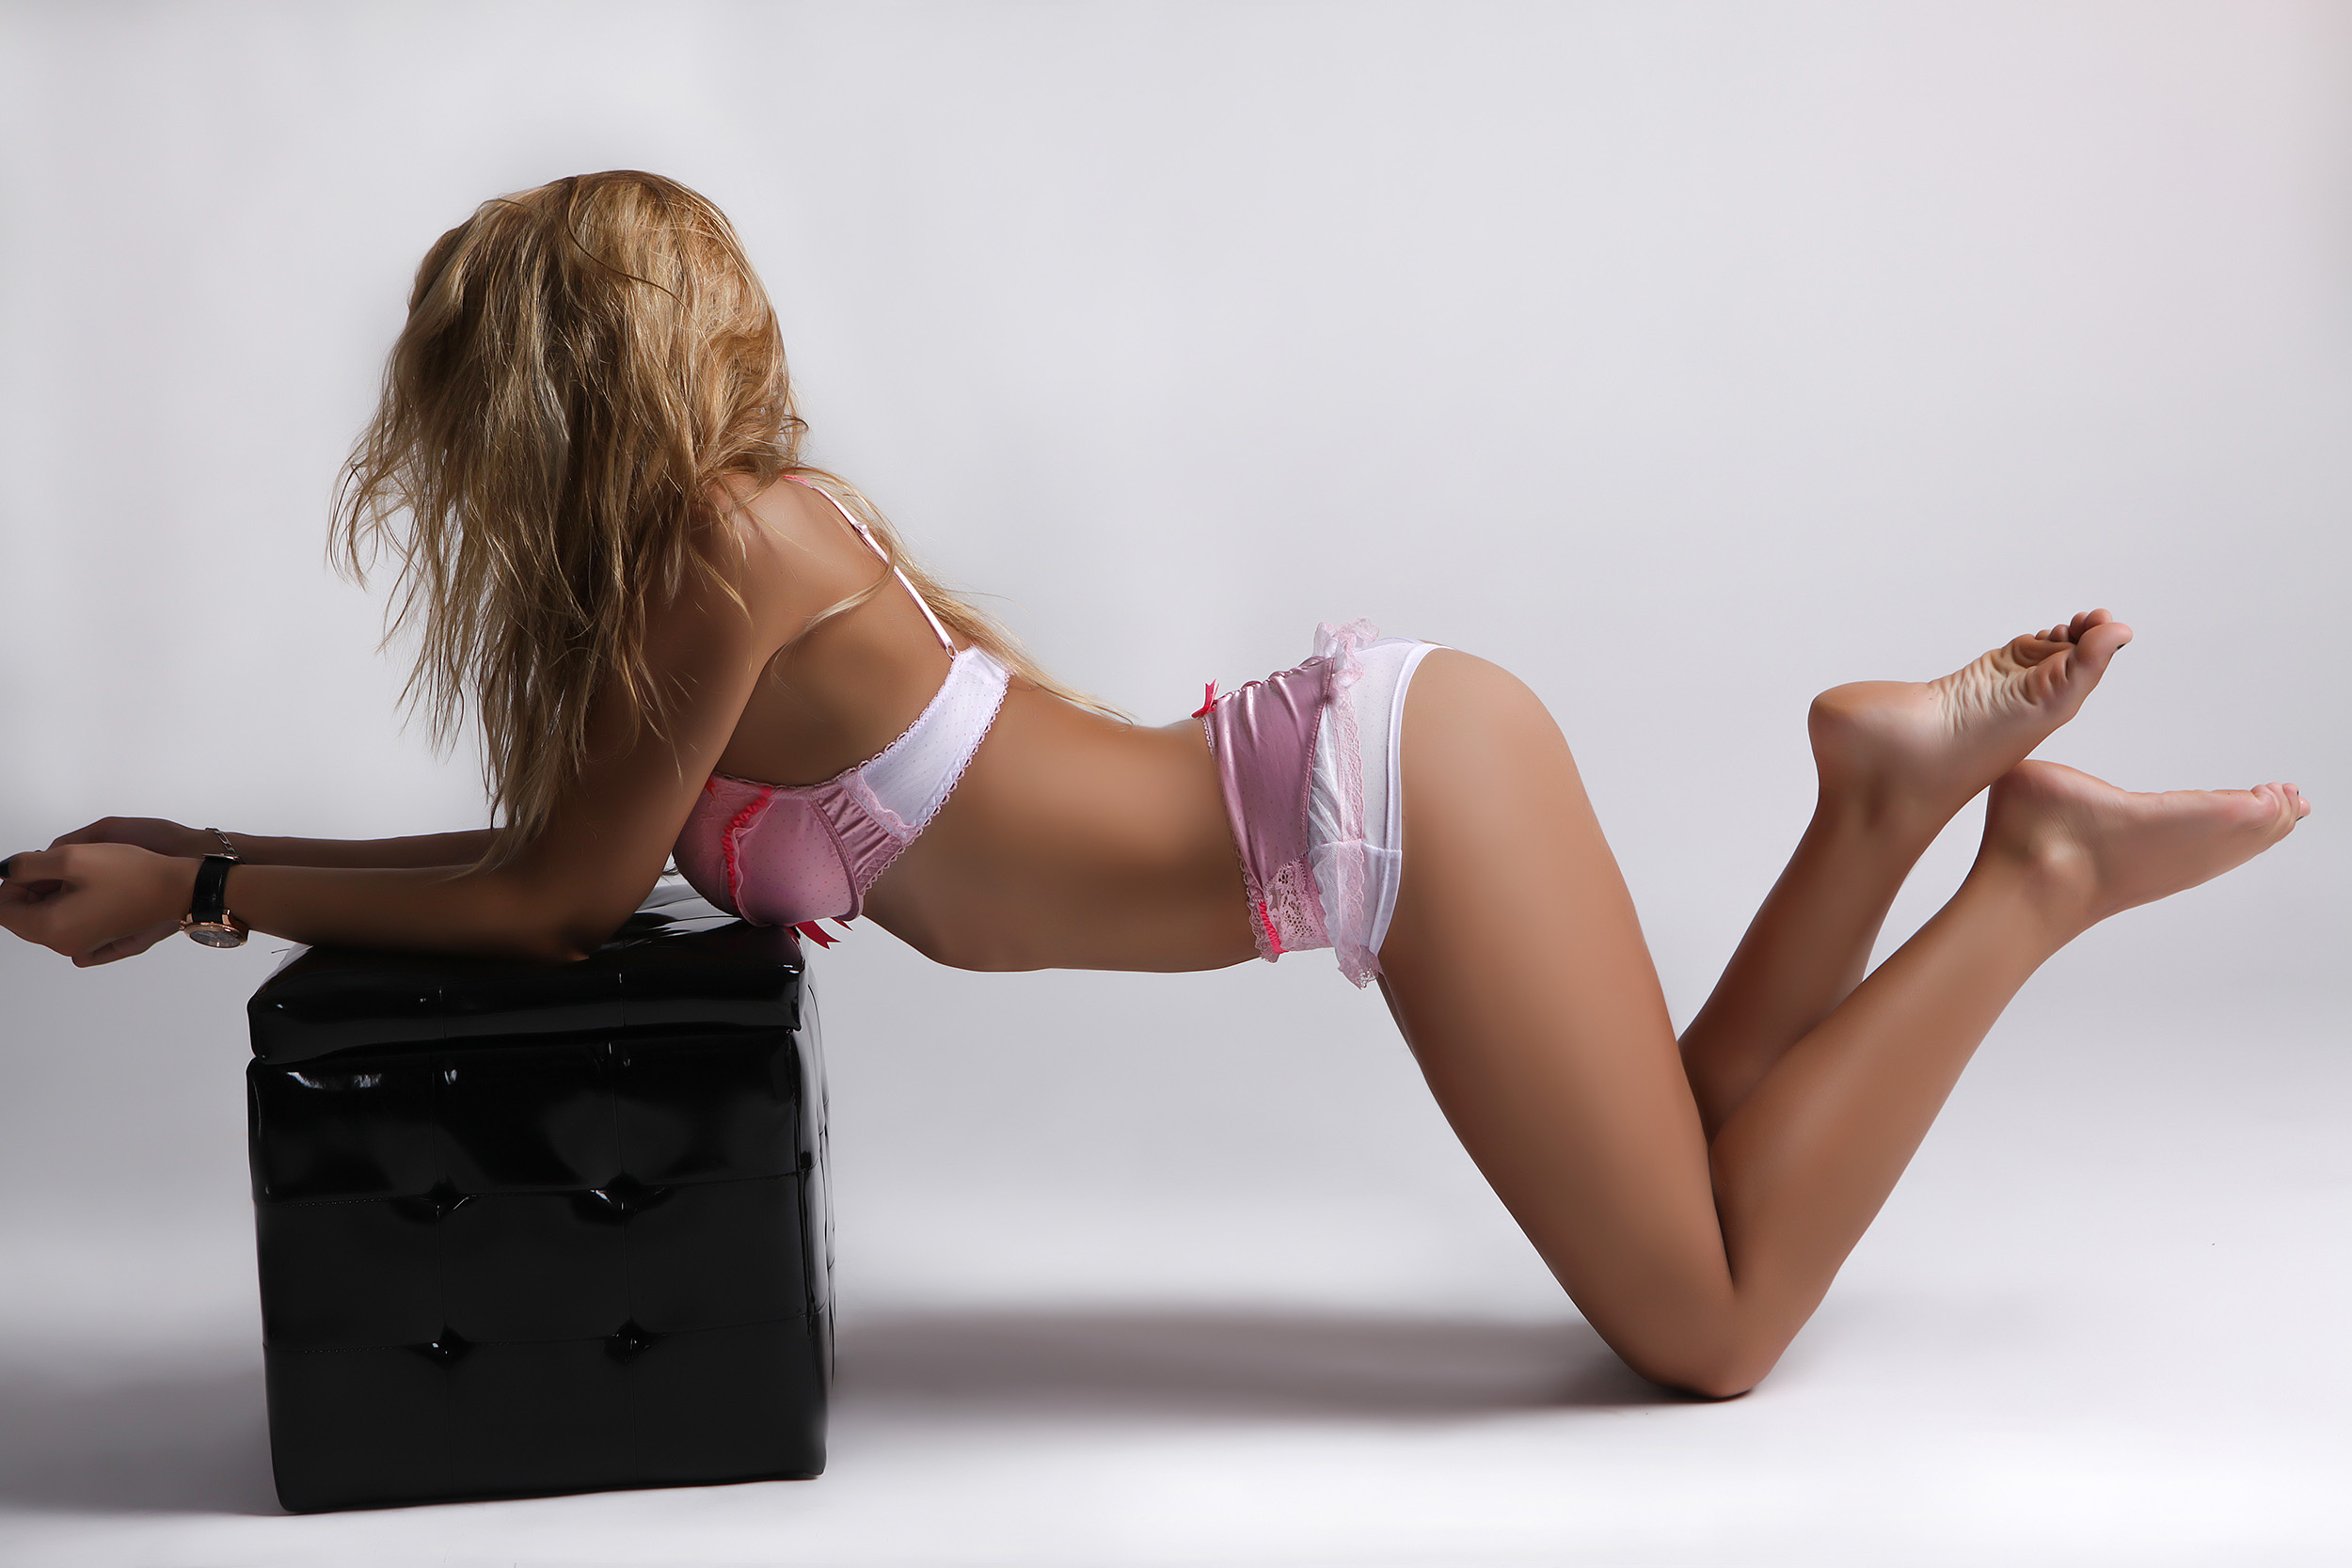 escort germany massage girl